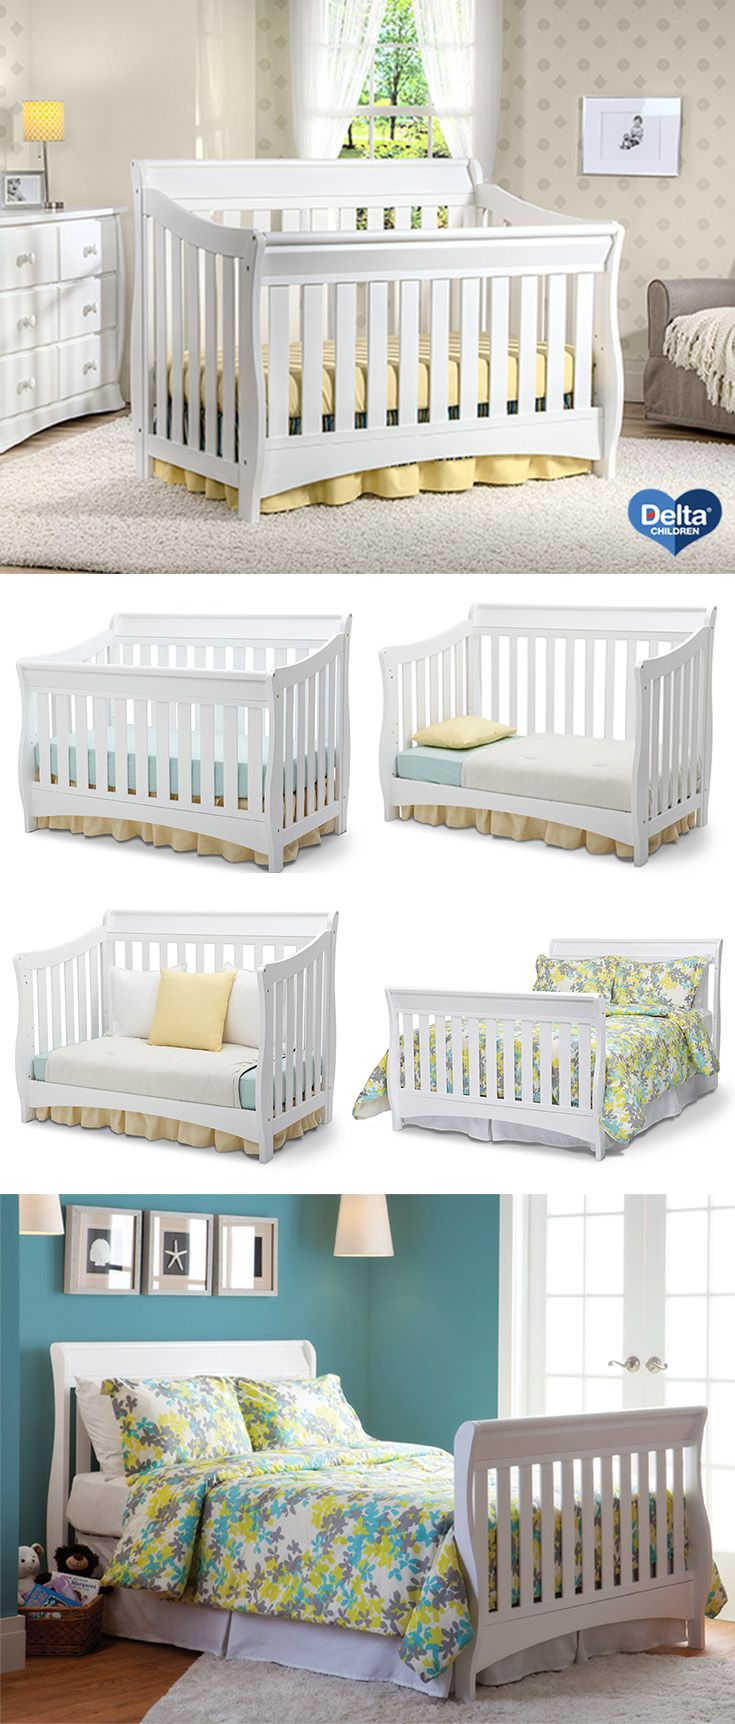 series instructions bed crib conversion toddler bentley s kit delta assembly